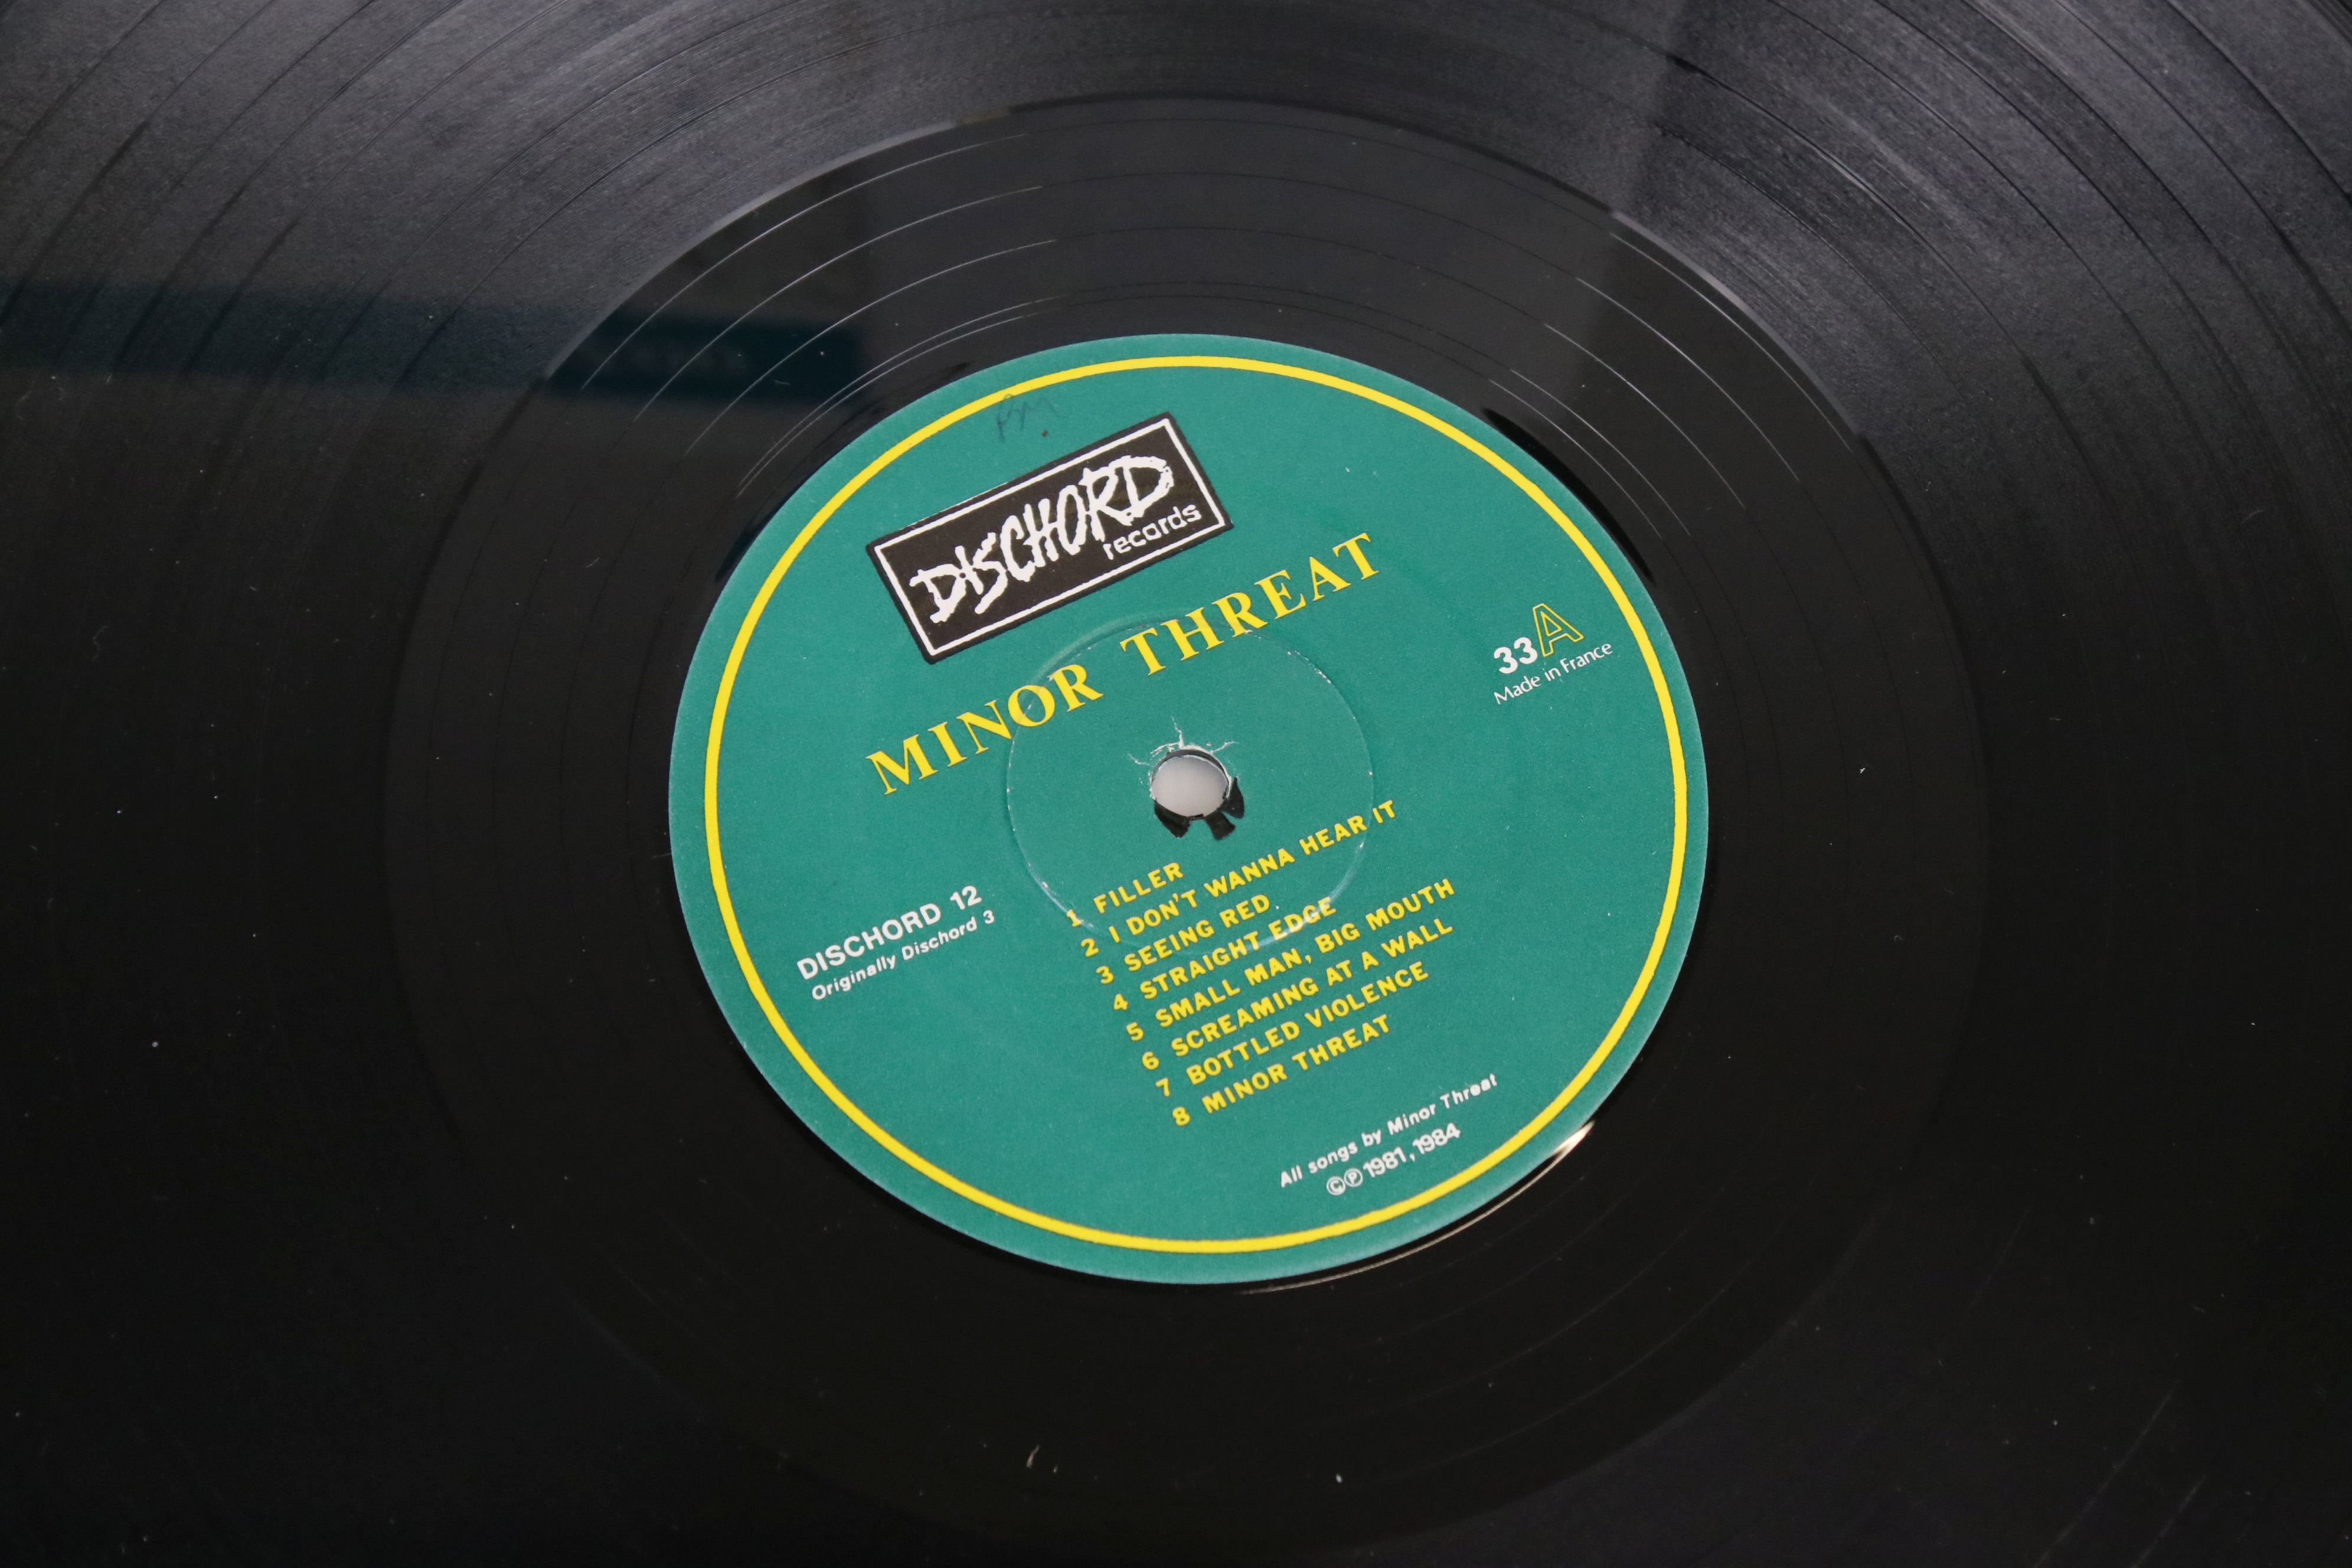 Vinyl - Two Minor Threat LPs to include Out of Step on Dischord No 10 and self titled No 13, both ex - Image 2 of 7